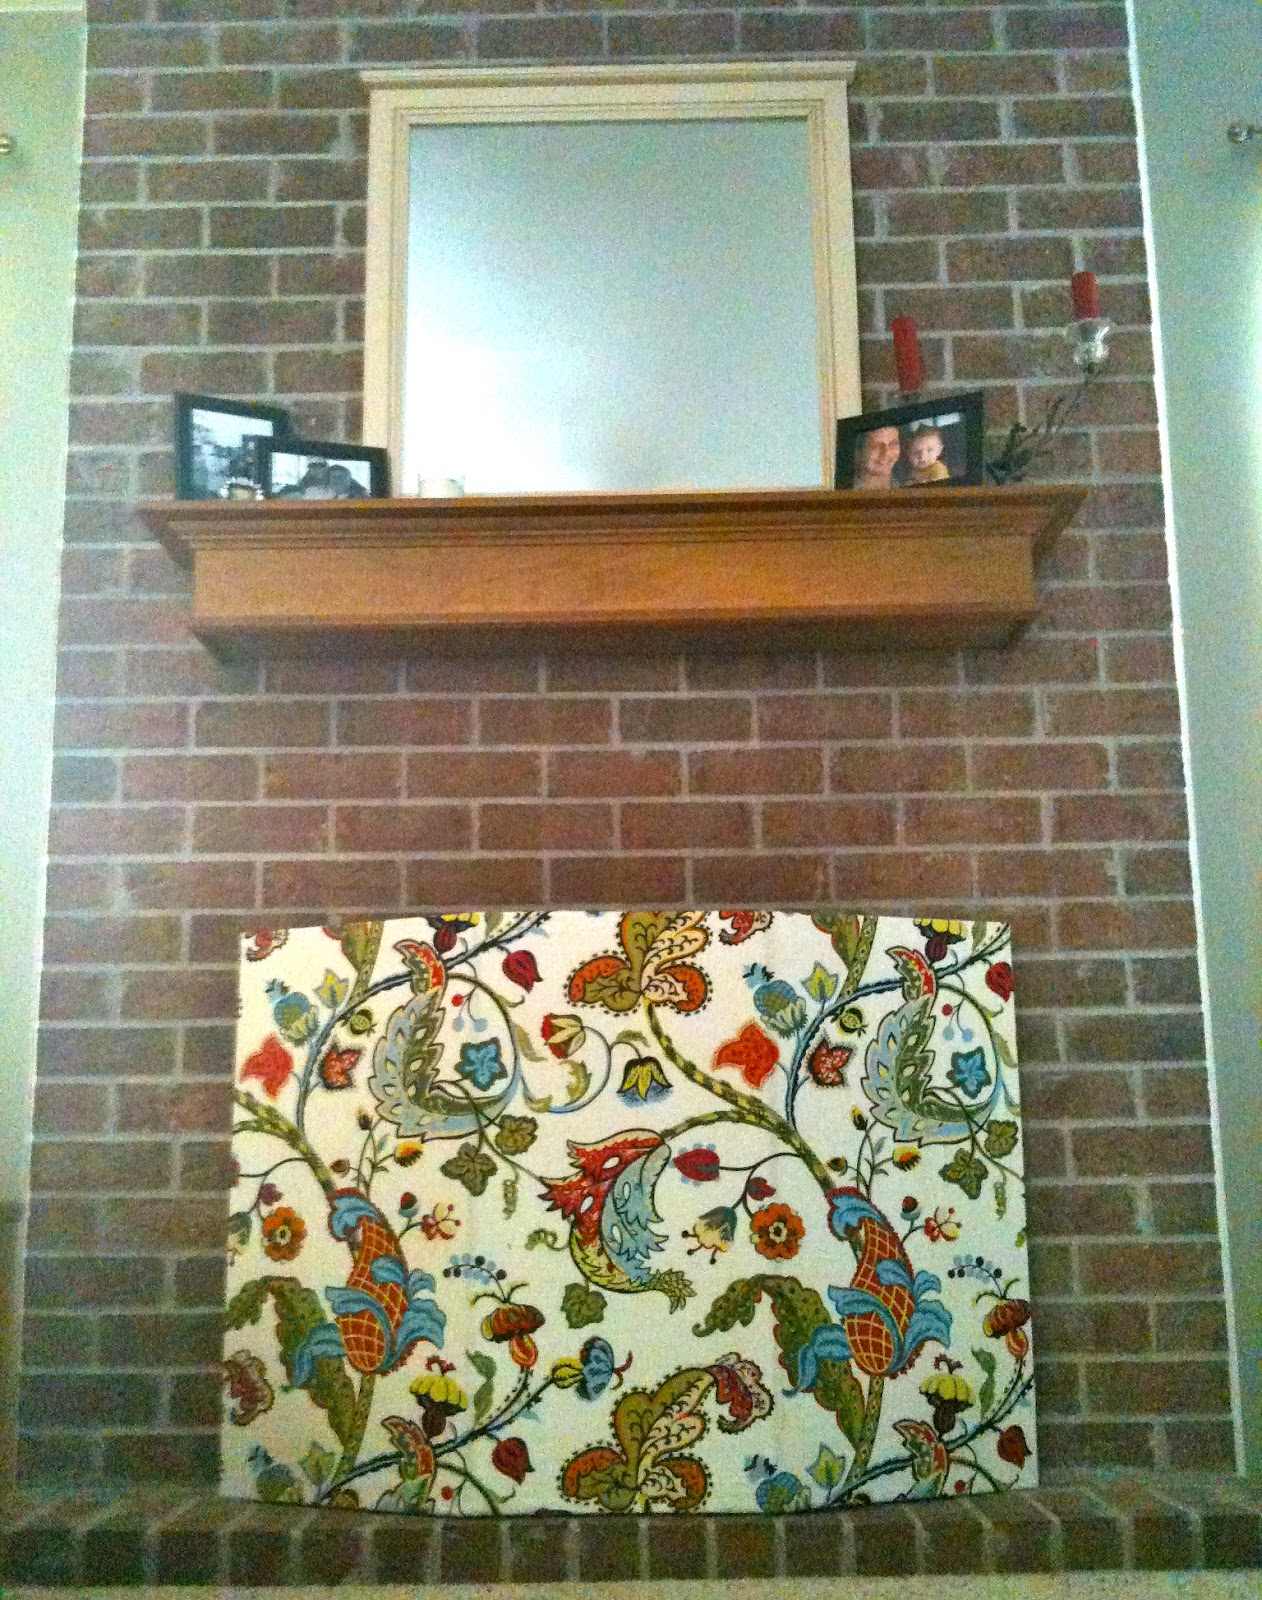 screen my decorative in sew you no practically fireplace for save diy made